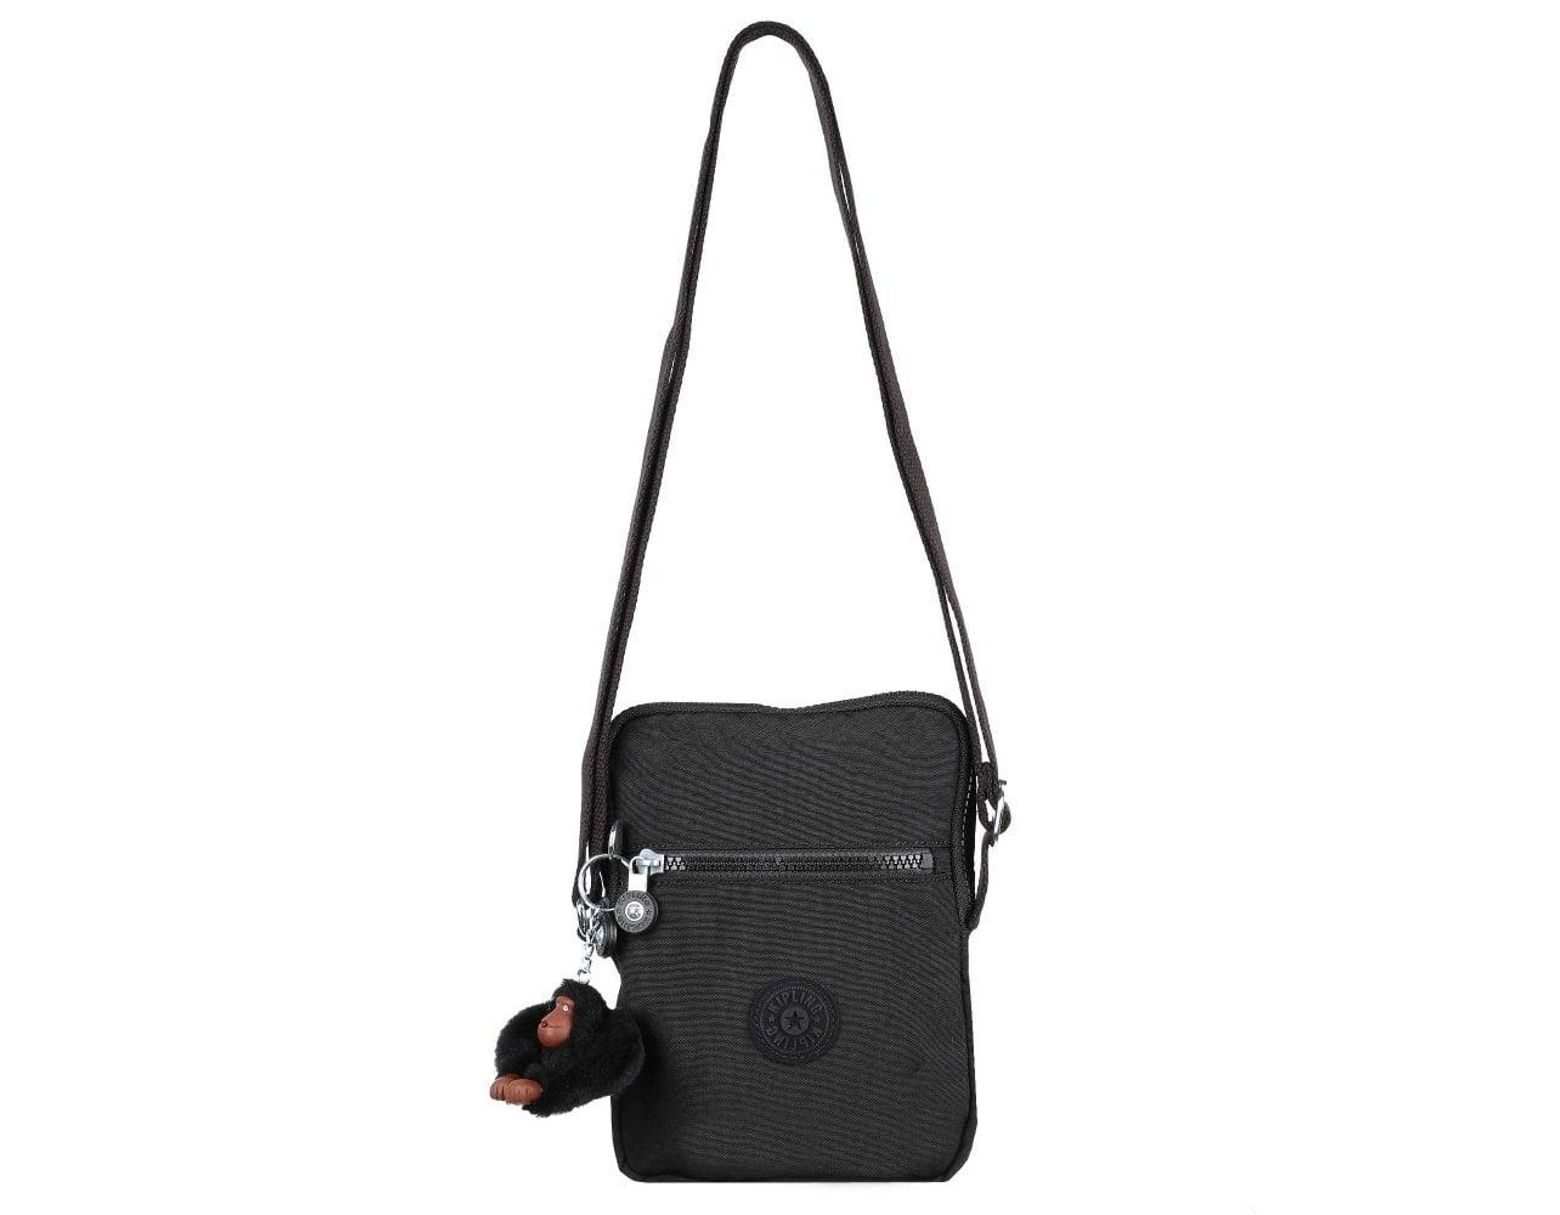 44efdd957c6 Kipling Essyla Womens Messenger Handbag in Black - Lyst